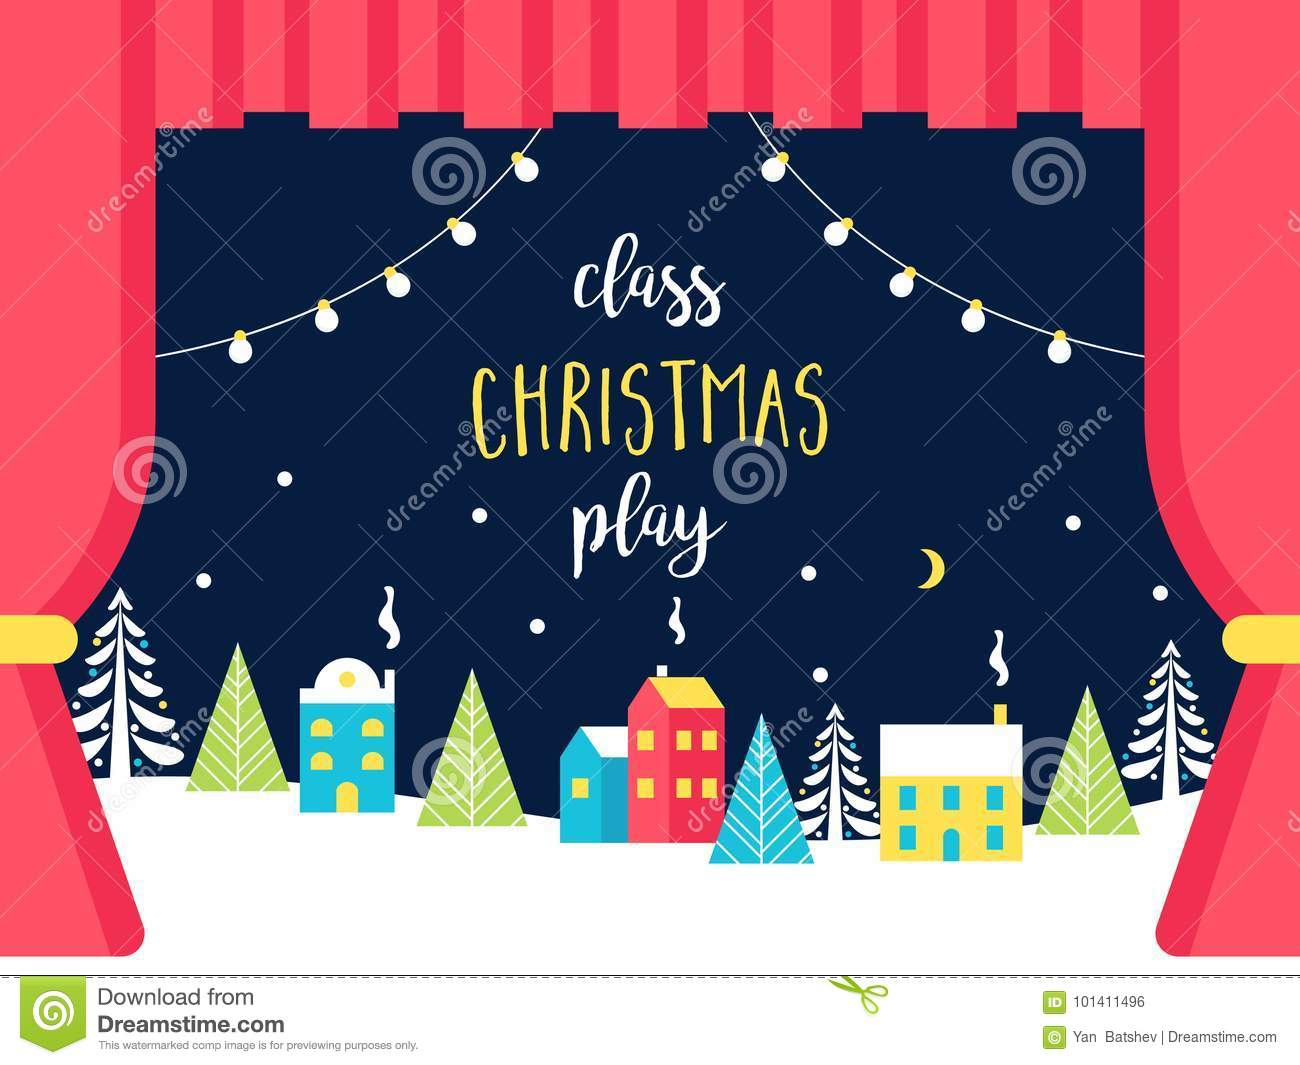 school or theatre stage decorations for christmas or new year play snowy winter wonderland and - Christmas Stage Decorations